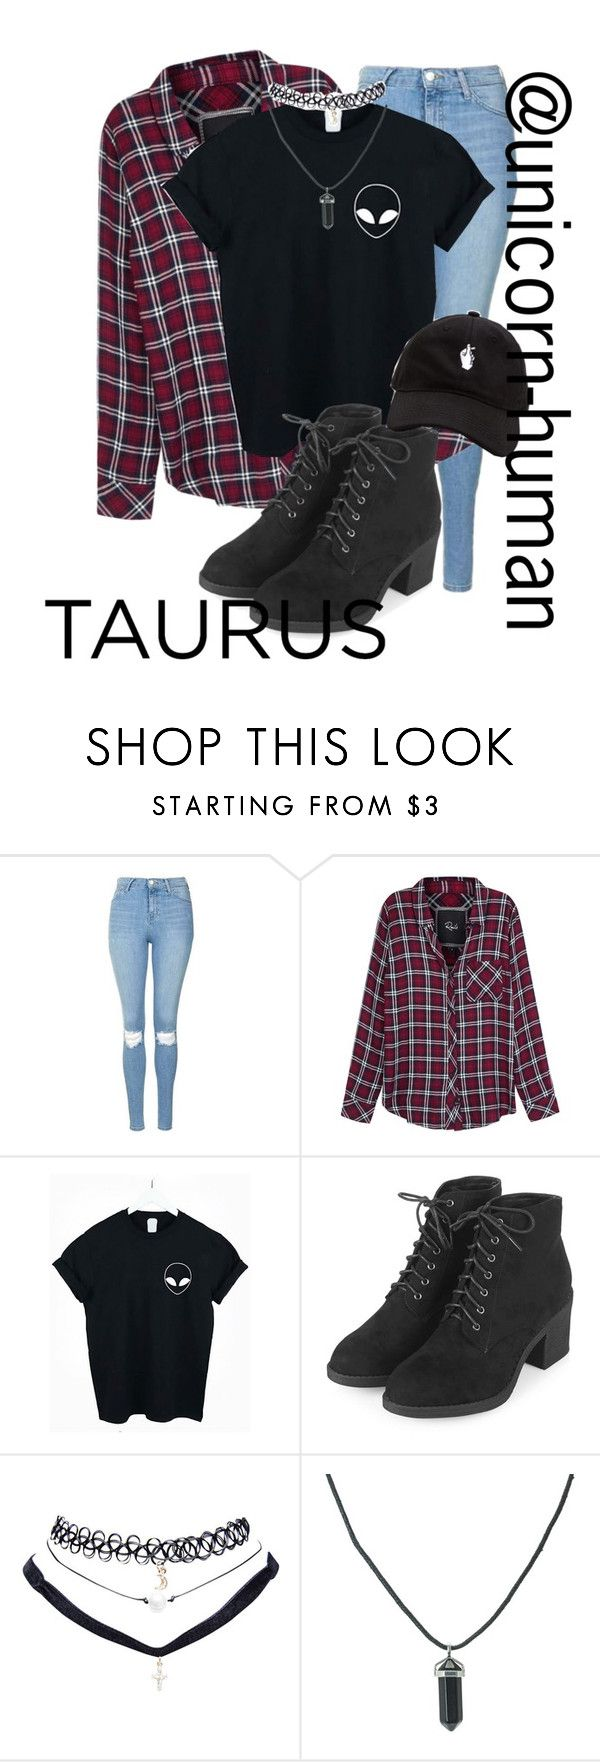 """Untitled #1697"" by unicorn-human on Polyvore featuring Topshop, Rails, WithChic, Wet Seal, fashionhoroscope and stylehoroscope"